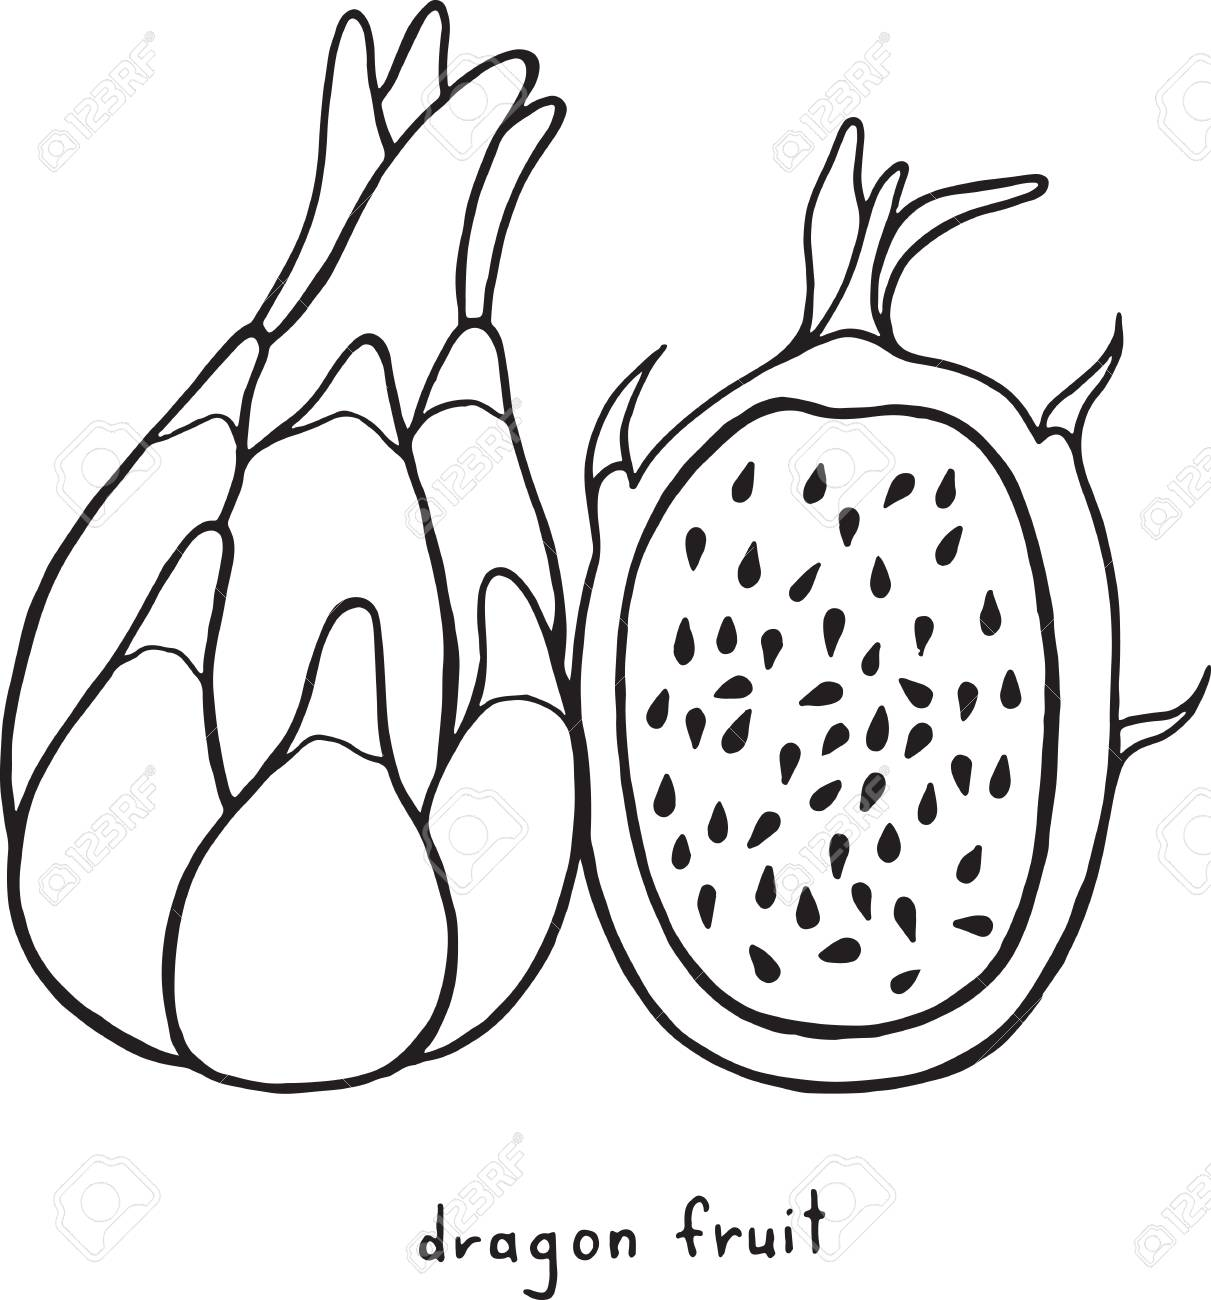 Dragon fruit coloring page. Graphic vector black and white art..